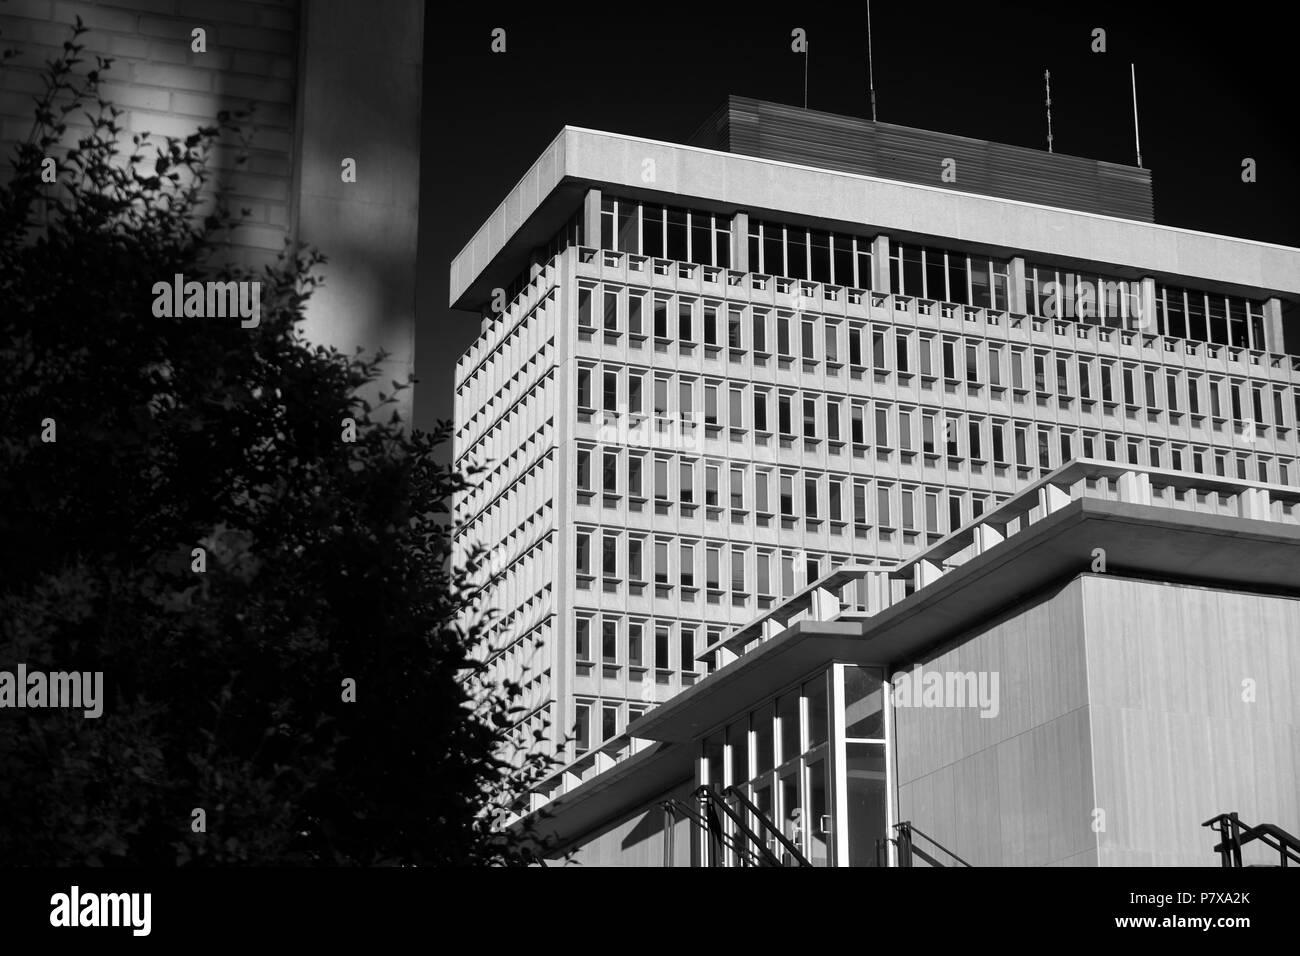 Monochromatic building, University of Wisconsin-Madison. Great for backgrounds and stock art. - Stock Image